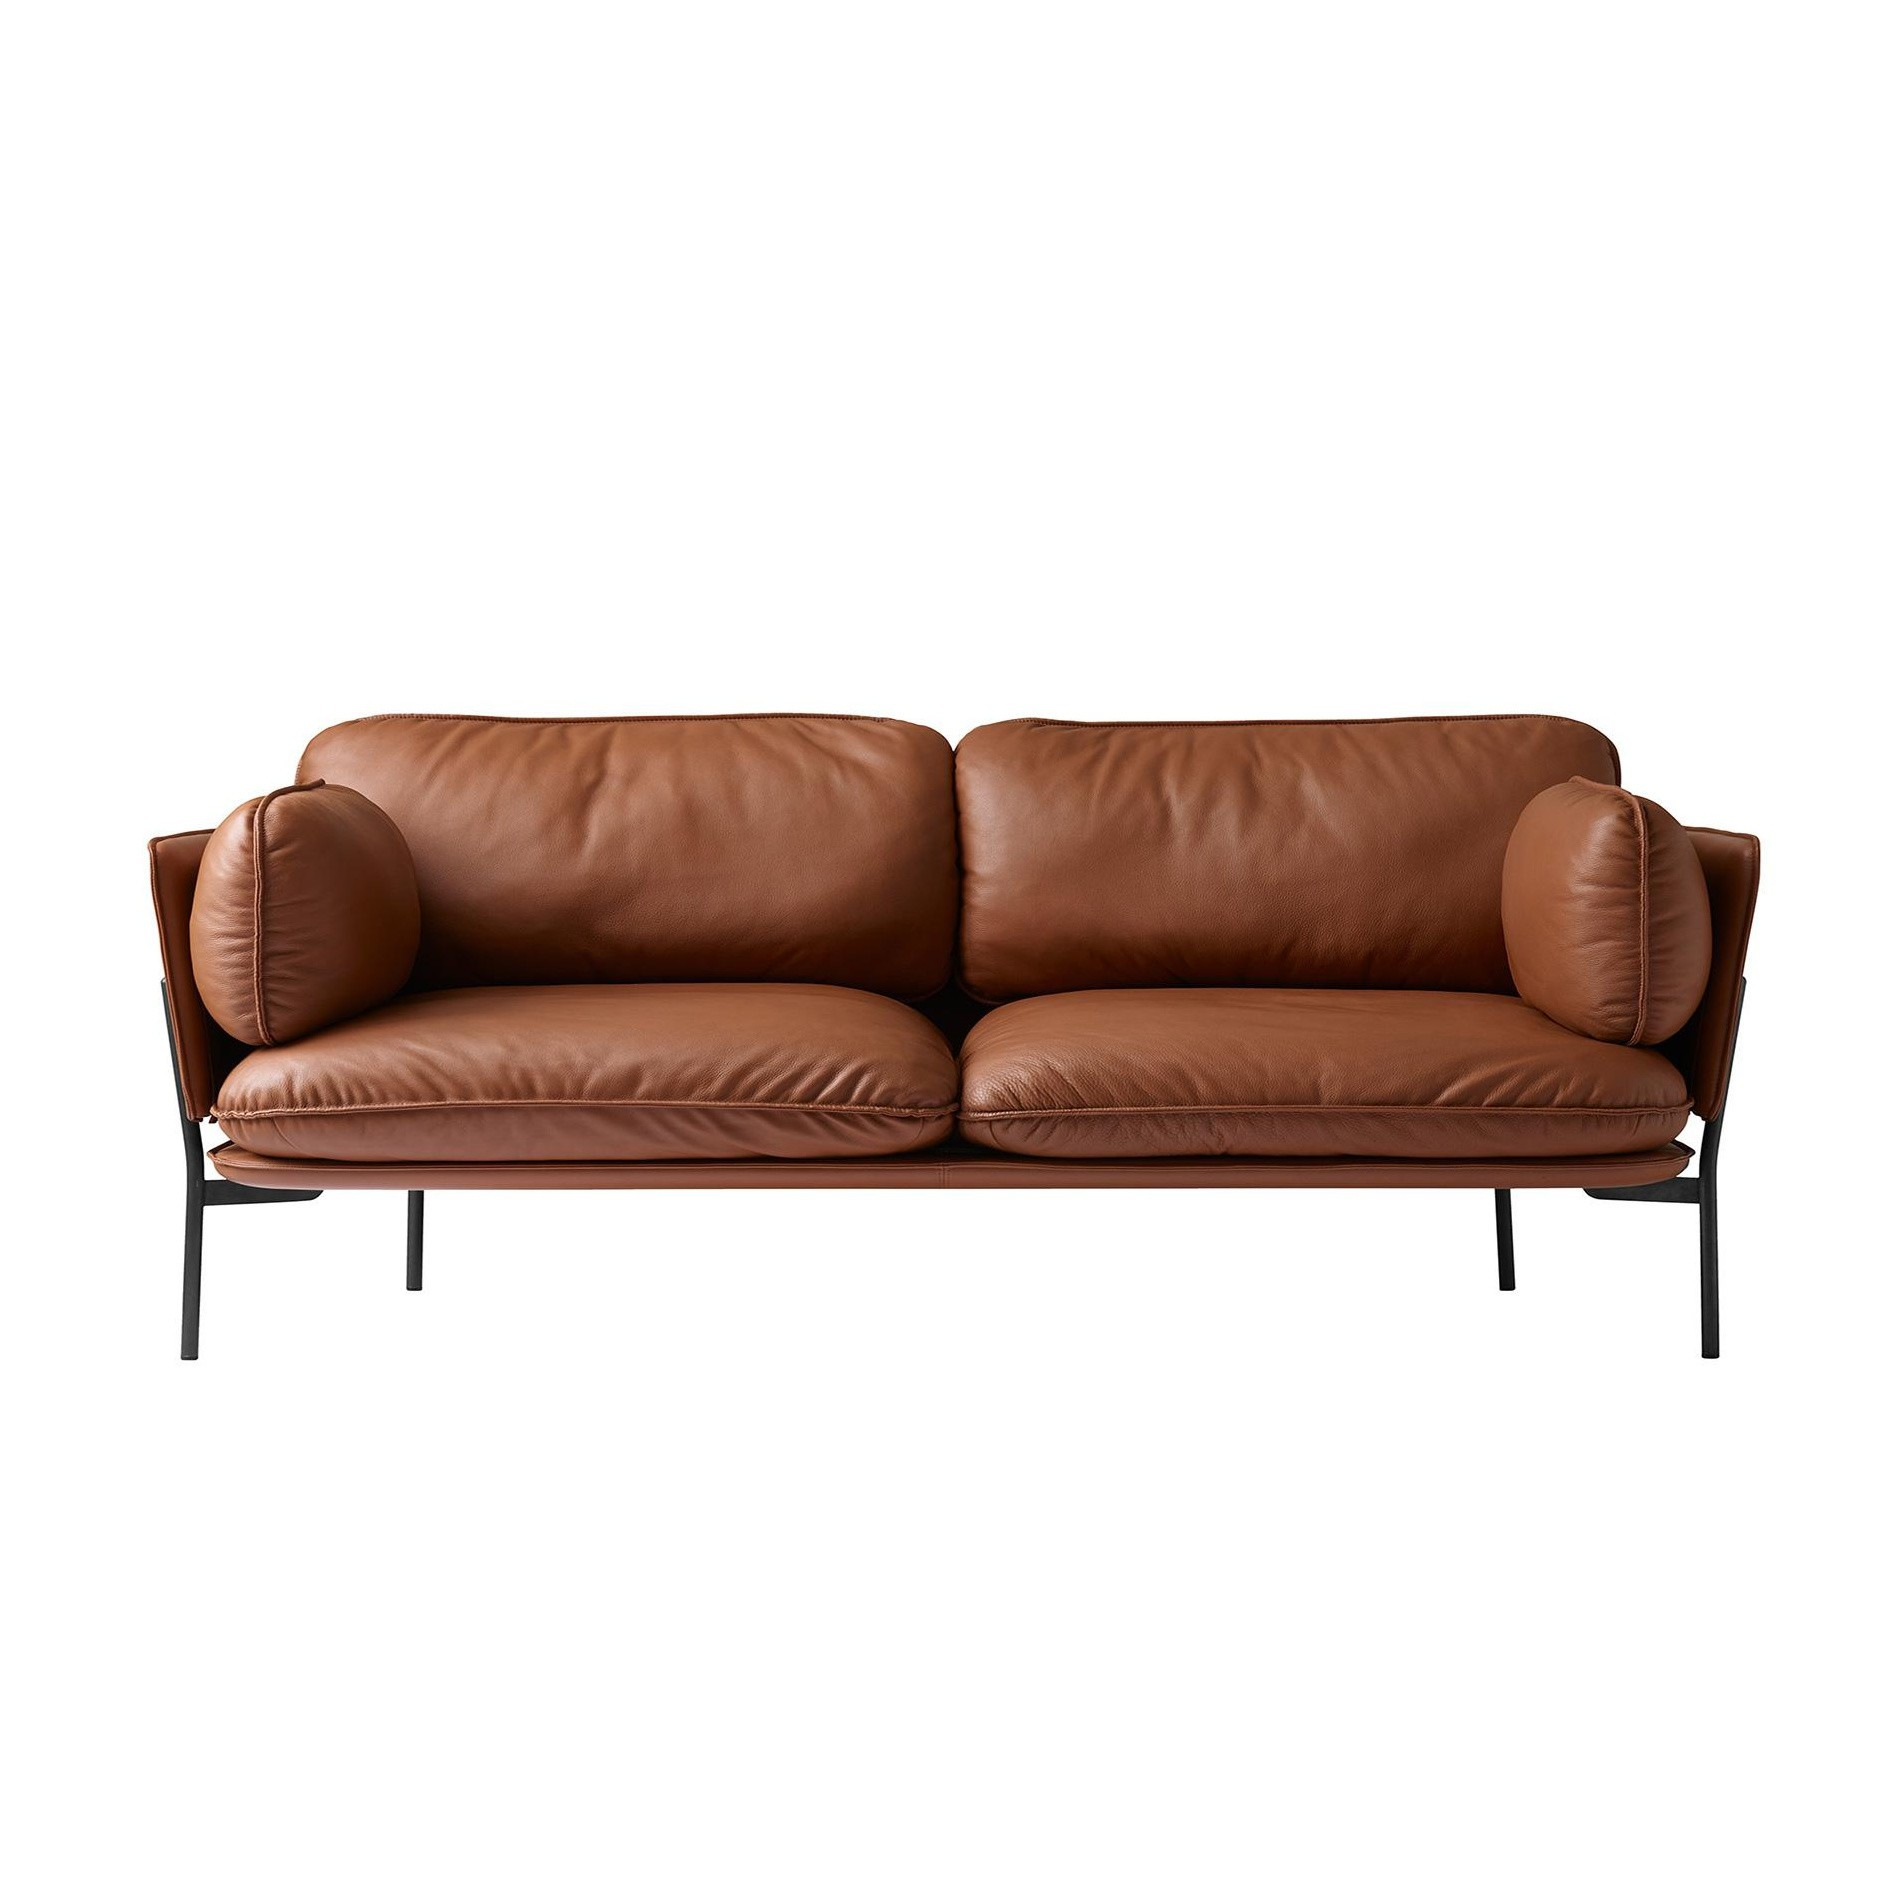 Tradition Cloud Ln3 2 Sofa 3 Sitzer Ambientedirect